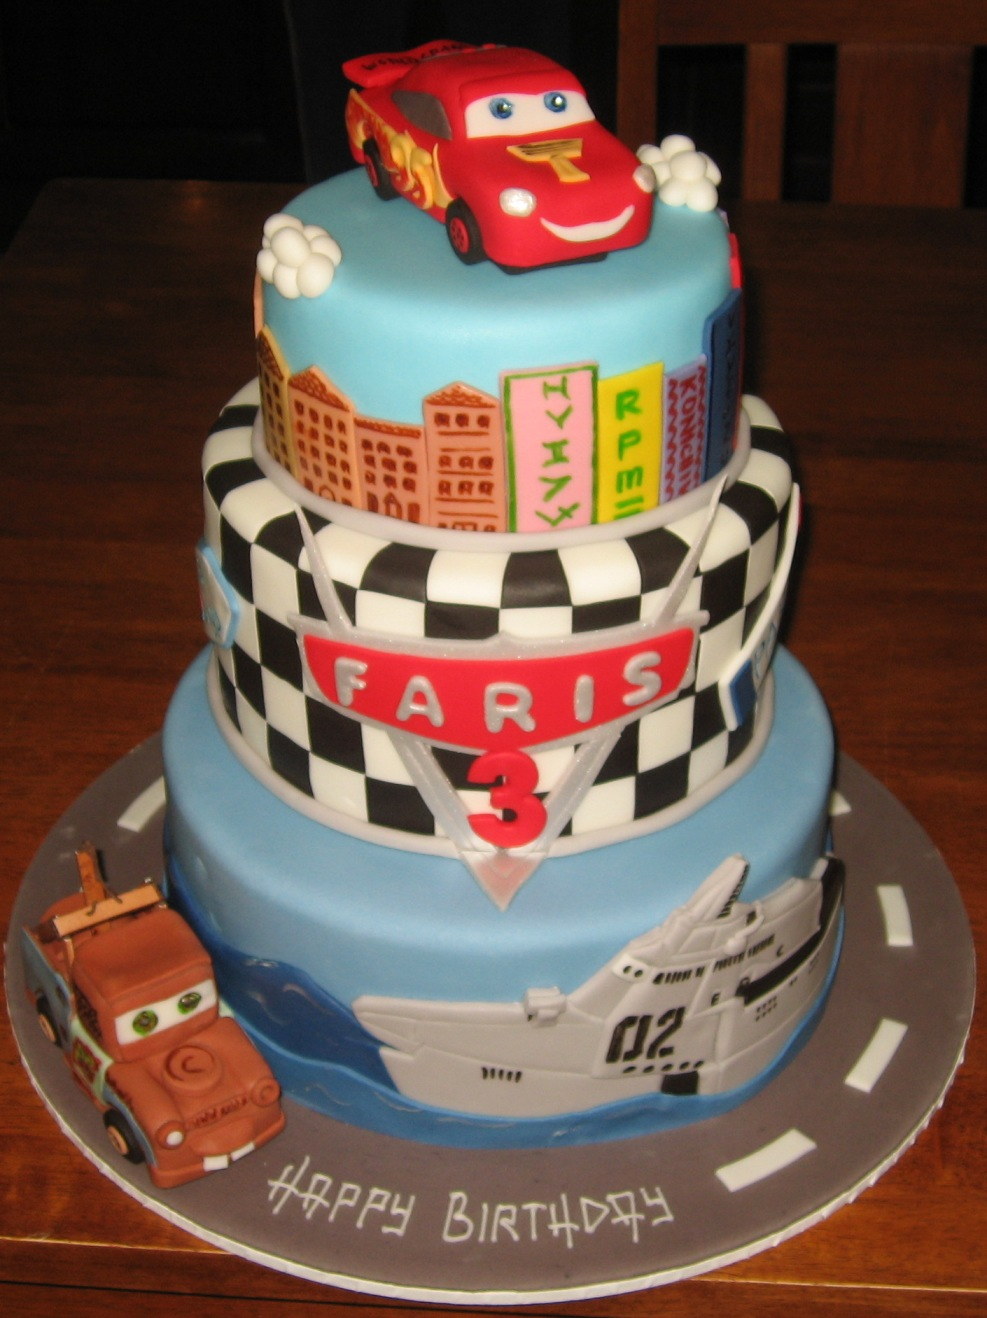 Birthday Cake Ideas For Cars 2 Image Inspiration of Cake and